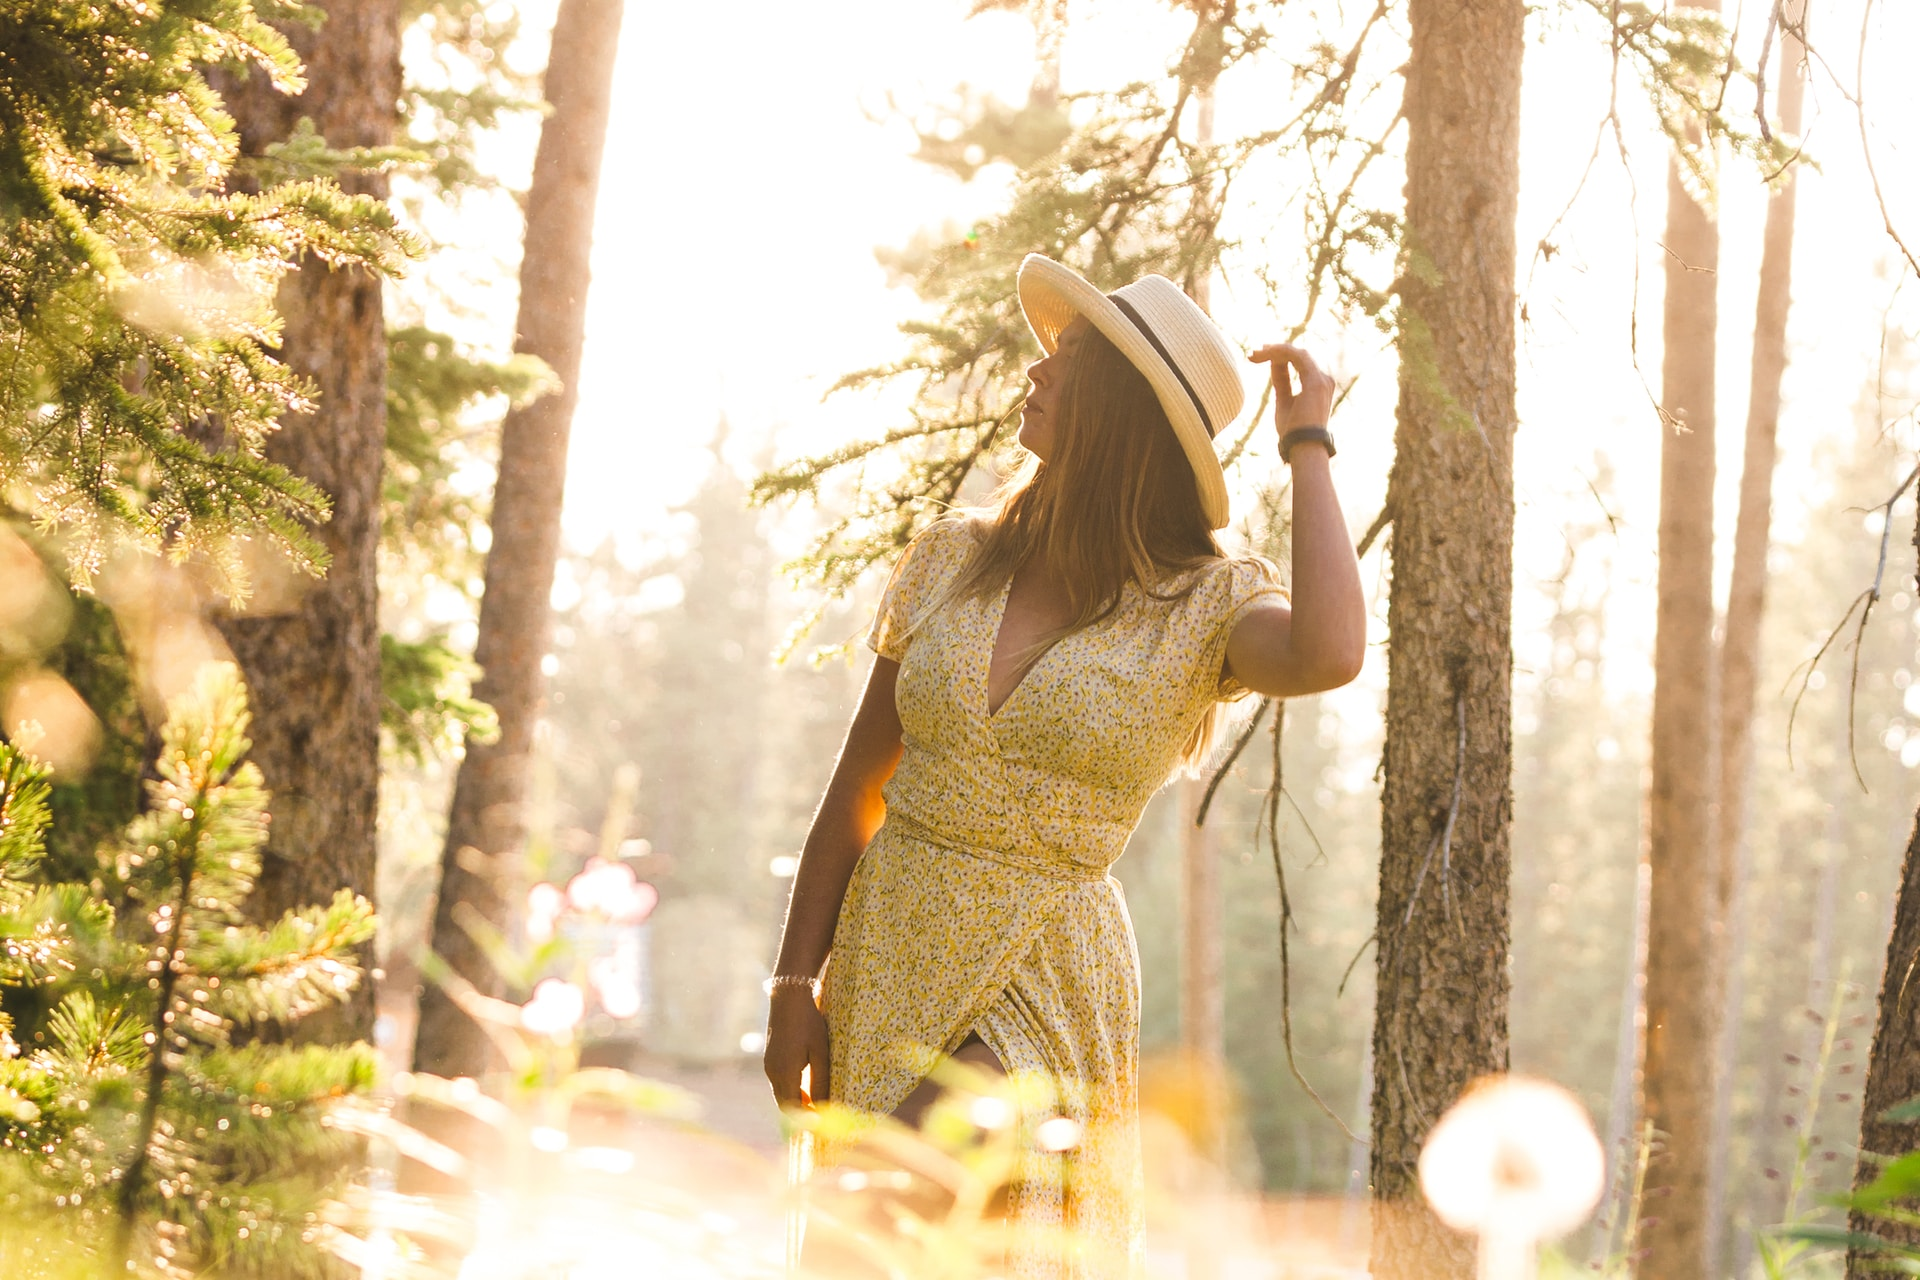 woman in black and brown dress standing in forest during daytime